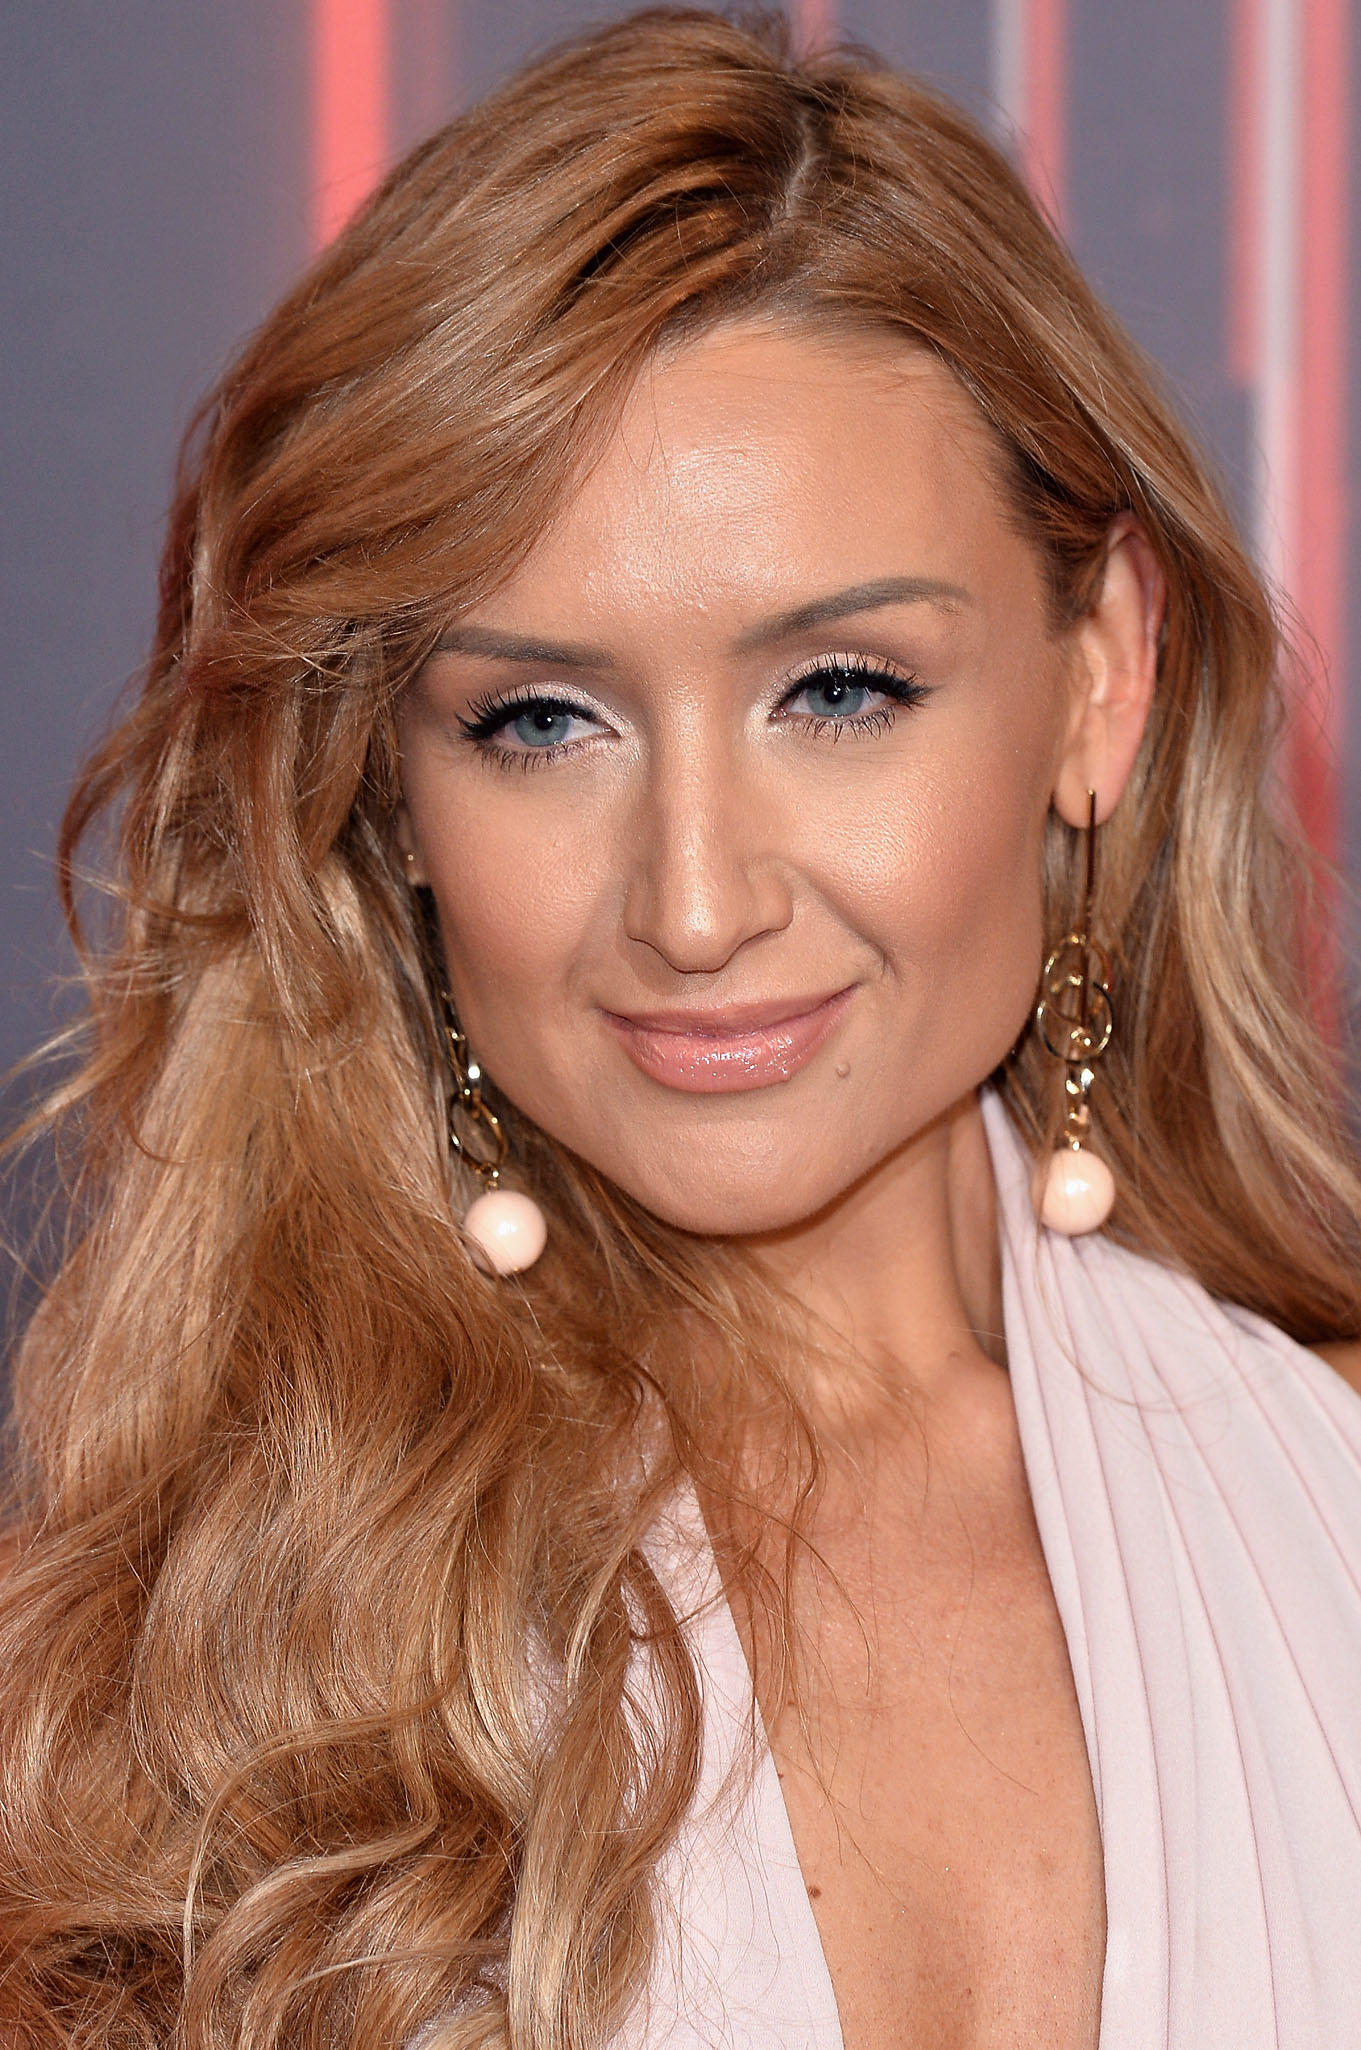 Catherine Tyldesley at The British Soap Awards in Manchester, England.